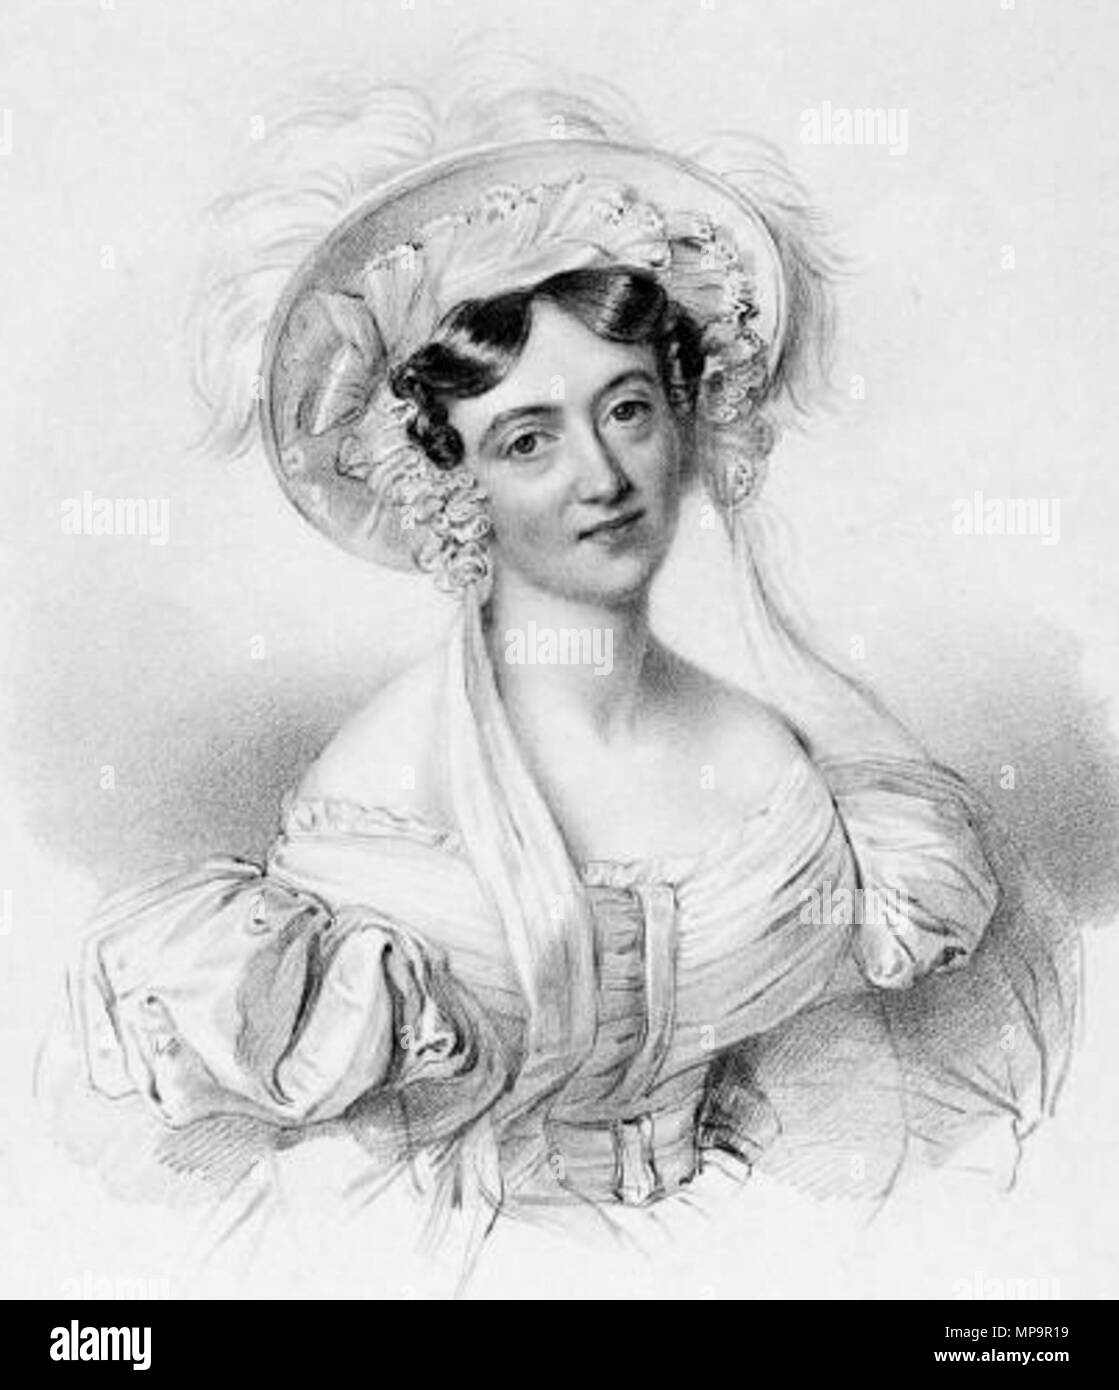 . English: English pianist Lucy Anderson (1797-1878) by Richard James Lane (1800-1872) after Johannes Notz (1802-1862) . 1833.   Richard James Lane (1800–1872)   Alternative names Richard J. Lane  Description English engraver and lithographer  Date of birth/death 16 February 1800 21 November 1872  Location of birth Berkeley Castle  Authority control  : Q7326816 VIAF:59348682 ISNI:0000 0000 6658 4871 ULAN:500120153 LCCN:n81054202 SUDOC:119740117 WorldCat    after Johannes Notz. Publisher: J. Dickinson, London. 831 Lucy Anderson by Richard James Lane - Stock Image